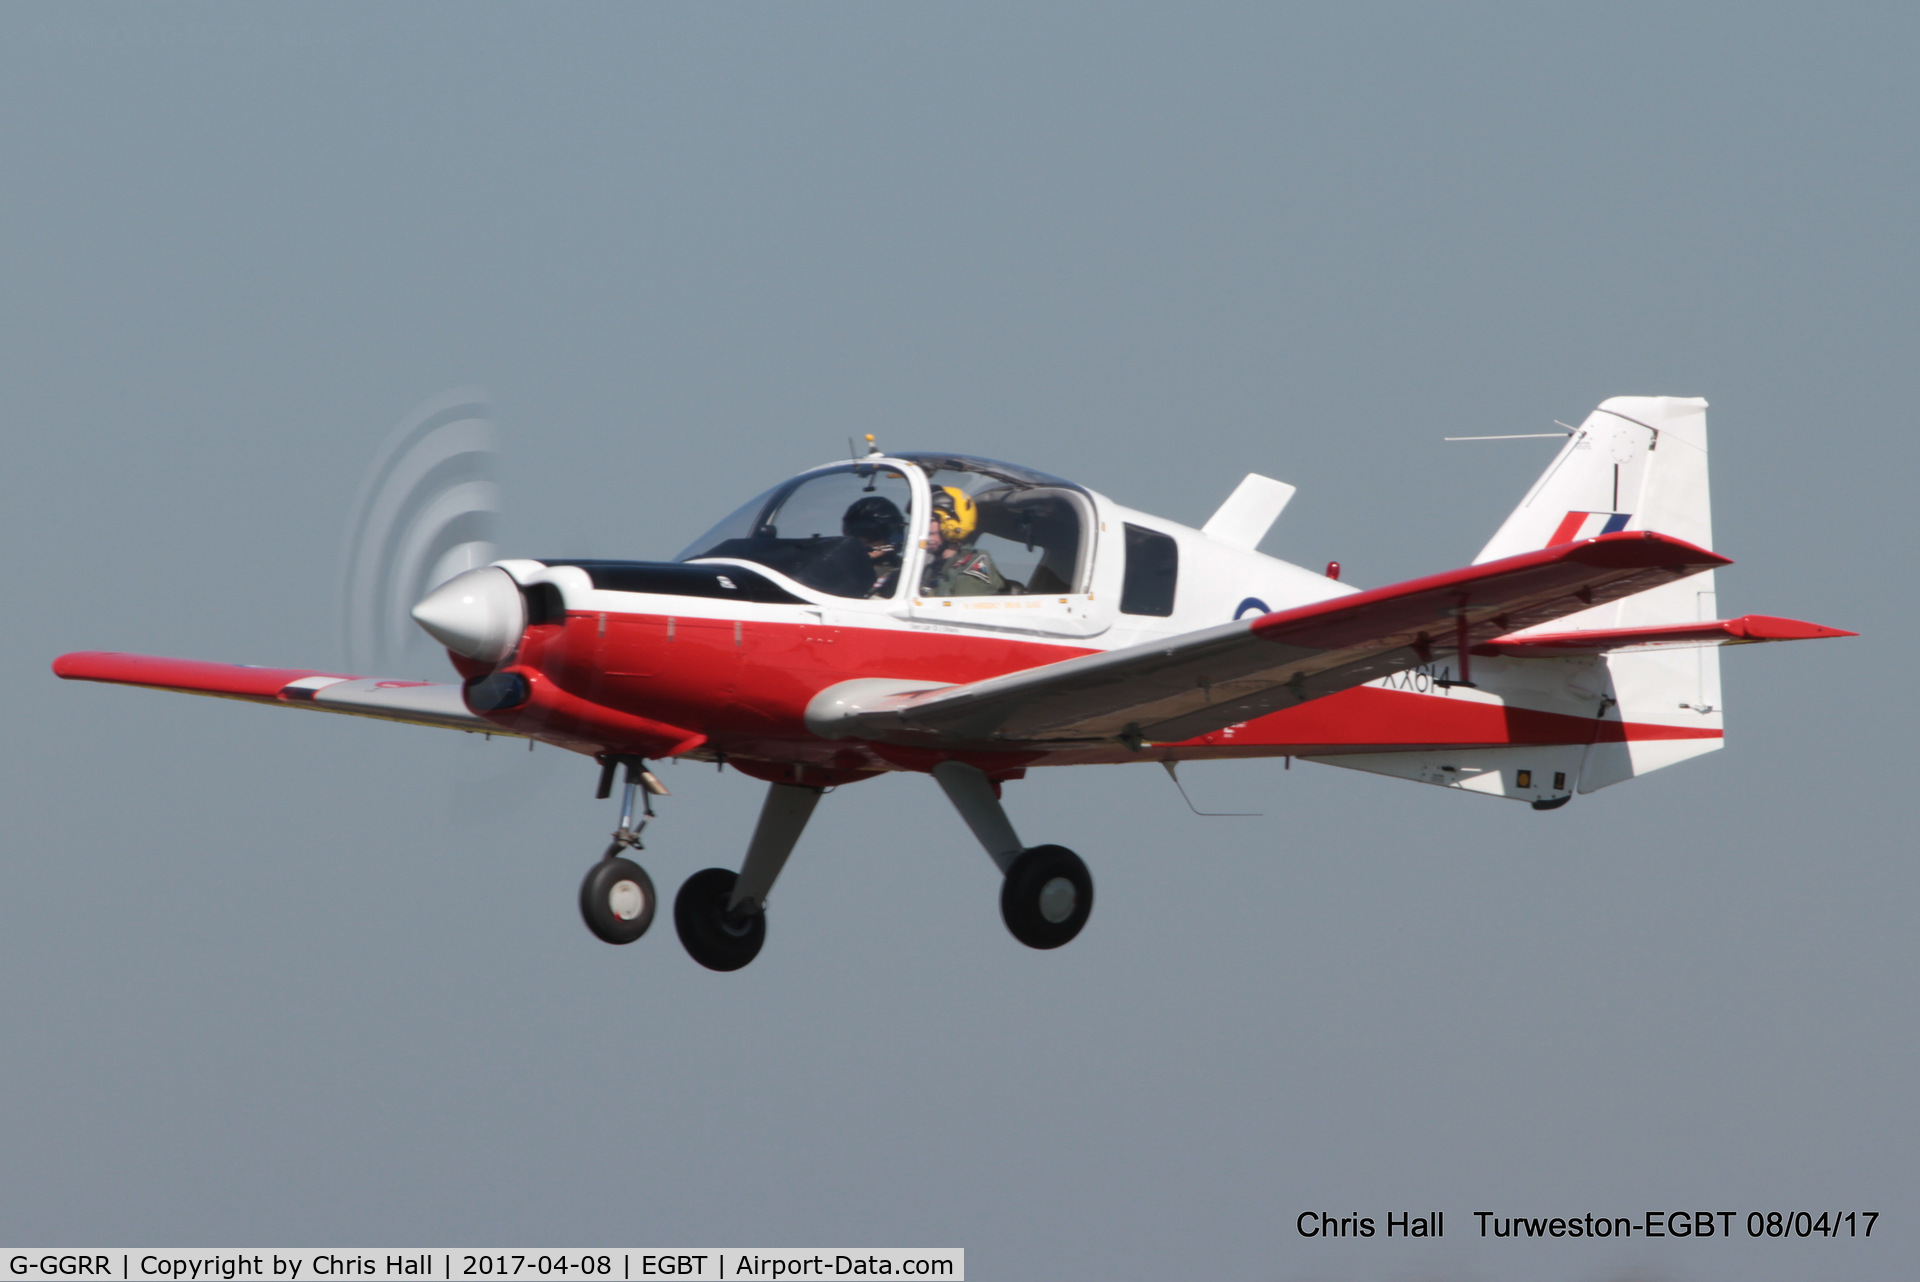 G-GGRR, 1974 Scottish Aviation Bulldog T.1 C/N BH120/272, at The Beagle Pup 50th anniversary celebration fly in